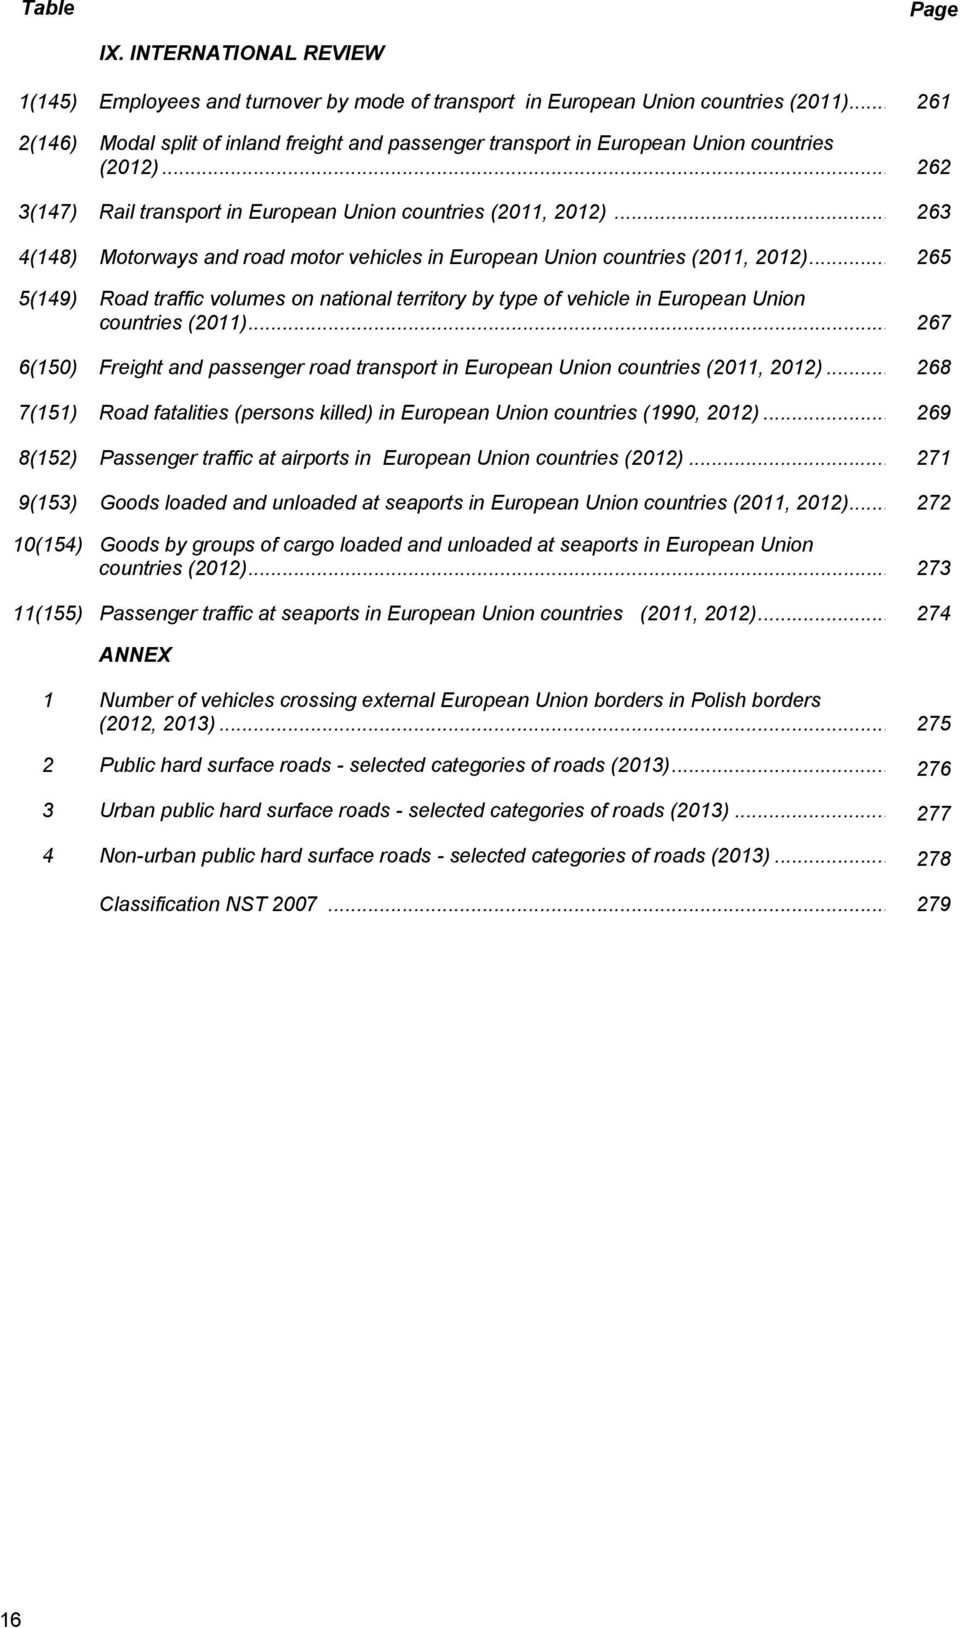 .. 263 4(148) Motorways and road motor vehicles in European Union countries (2011, 2012)... 265 5(149) Road traffic volumes on national territory by type of vehicle in European Union countries (2011).